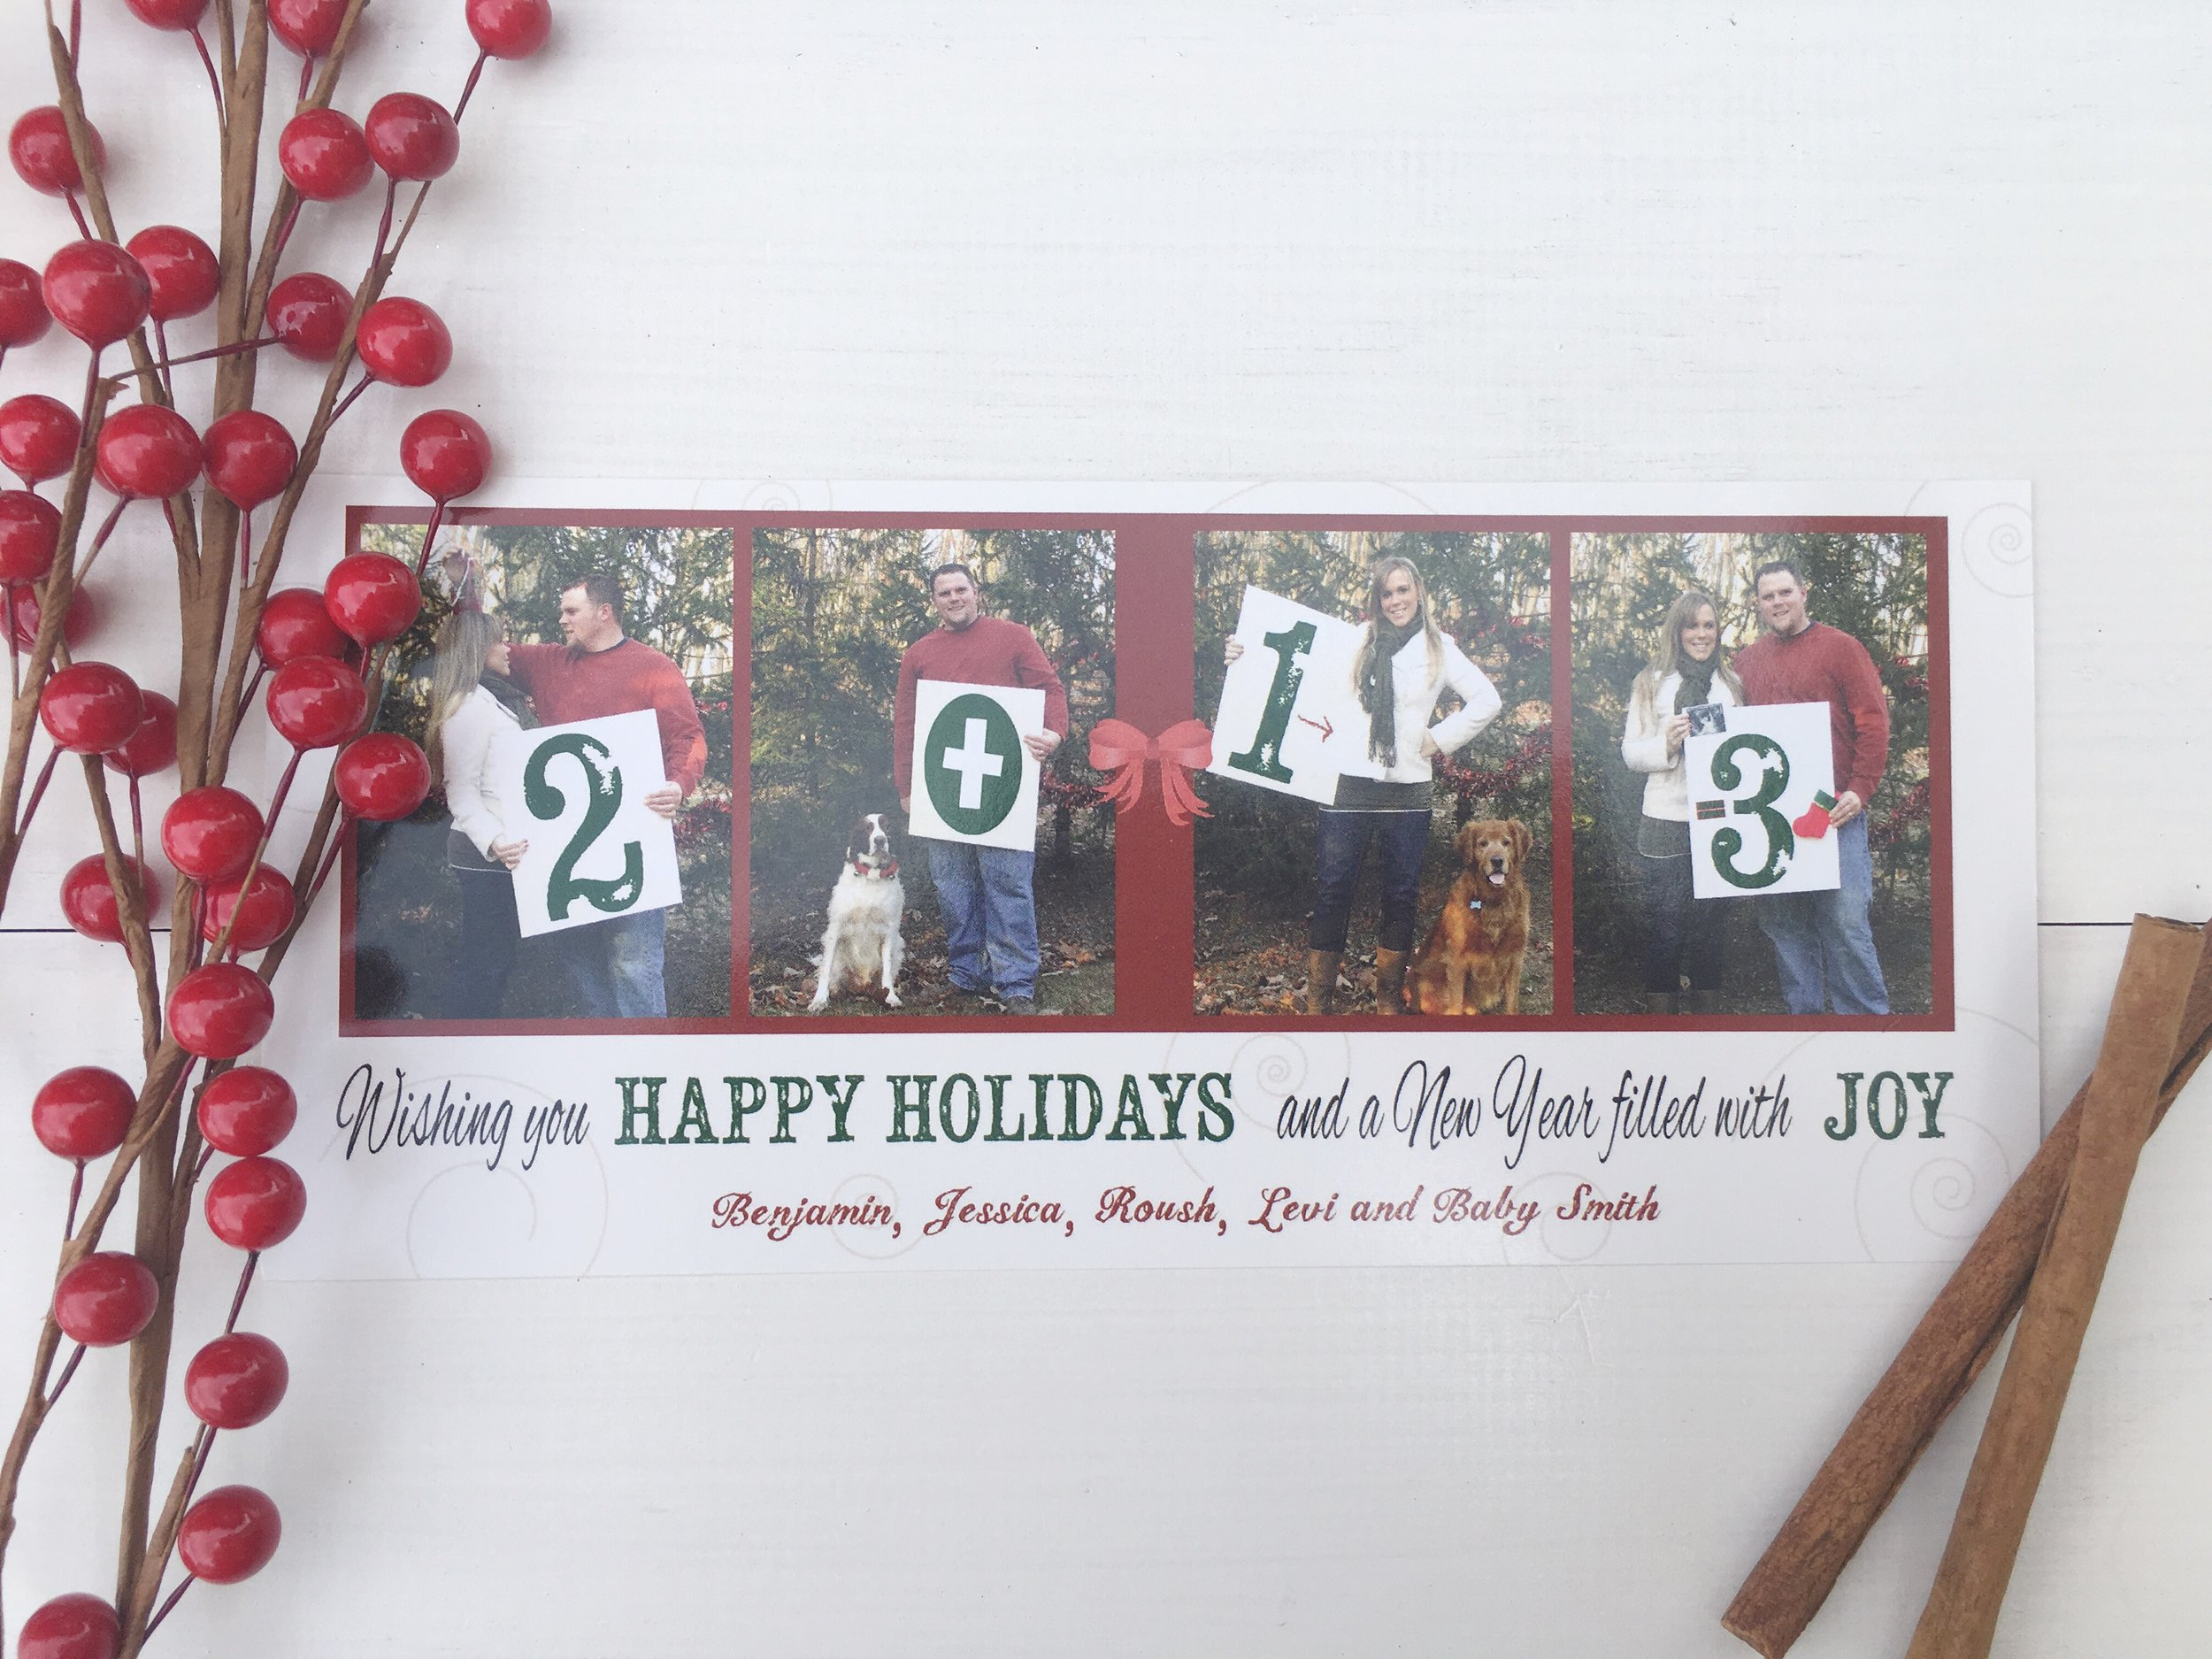 jsd pregnancy announcement holiday card.jpg